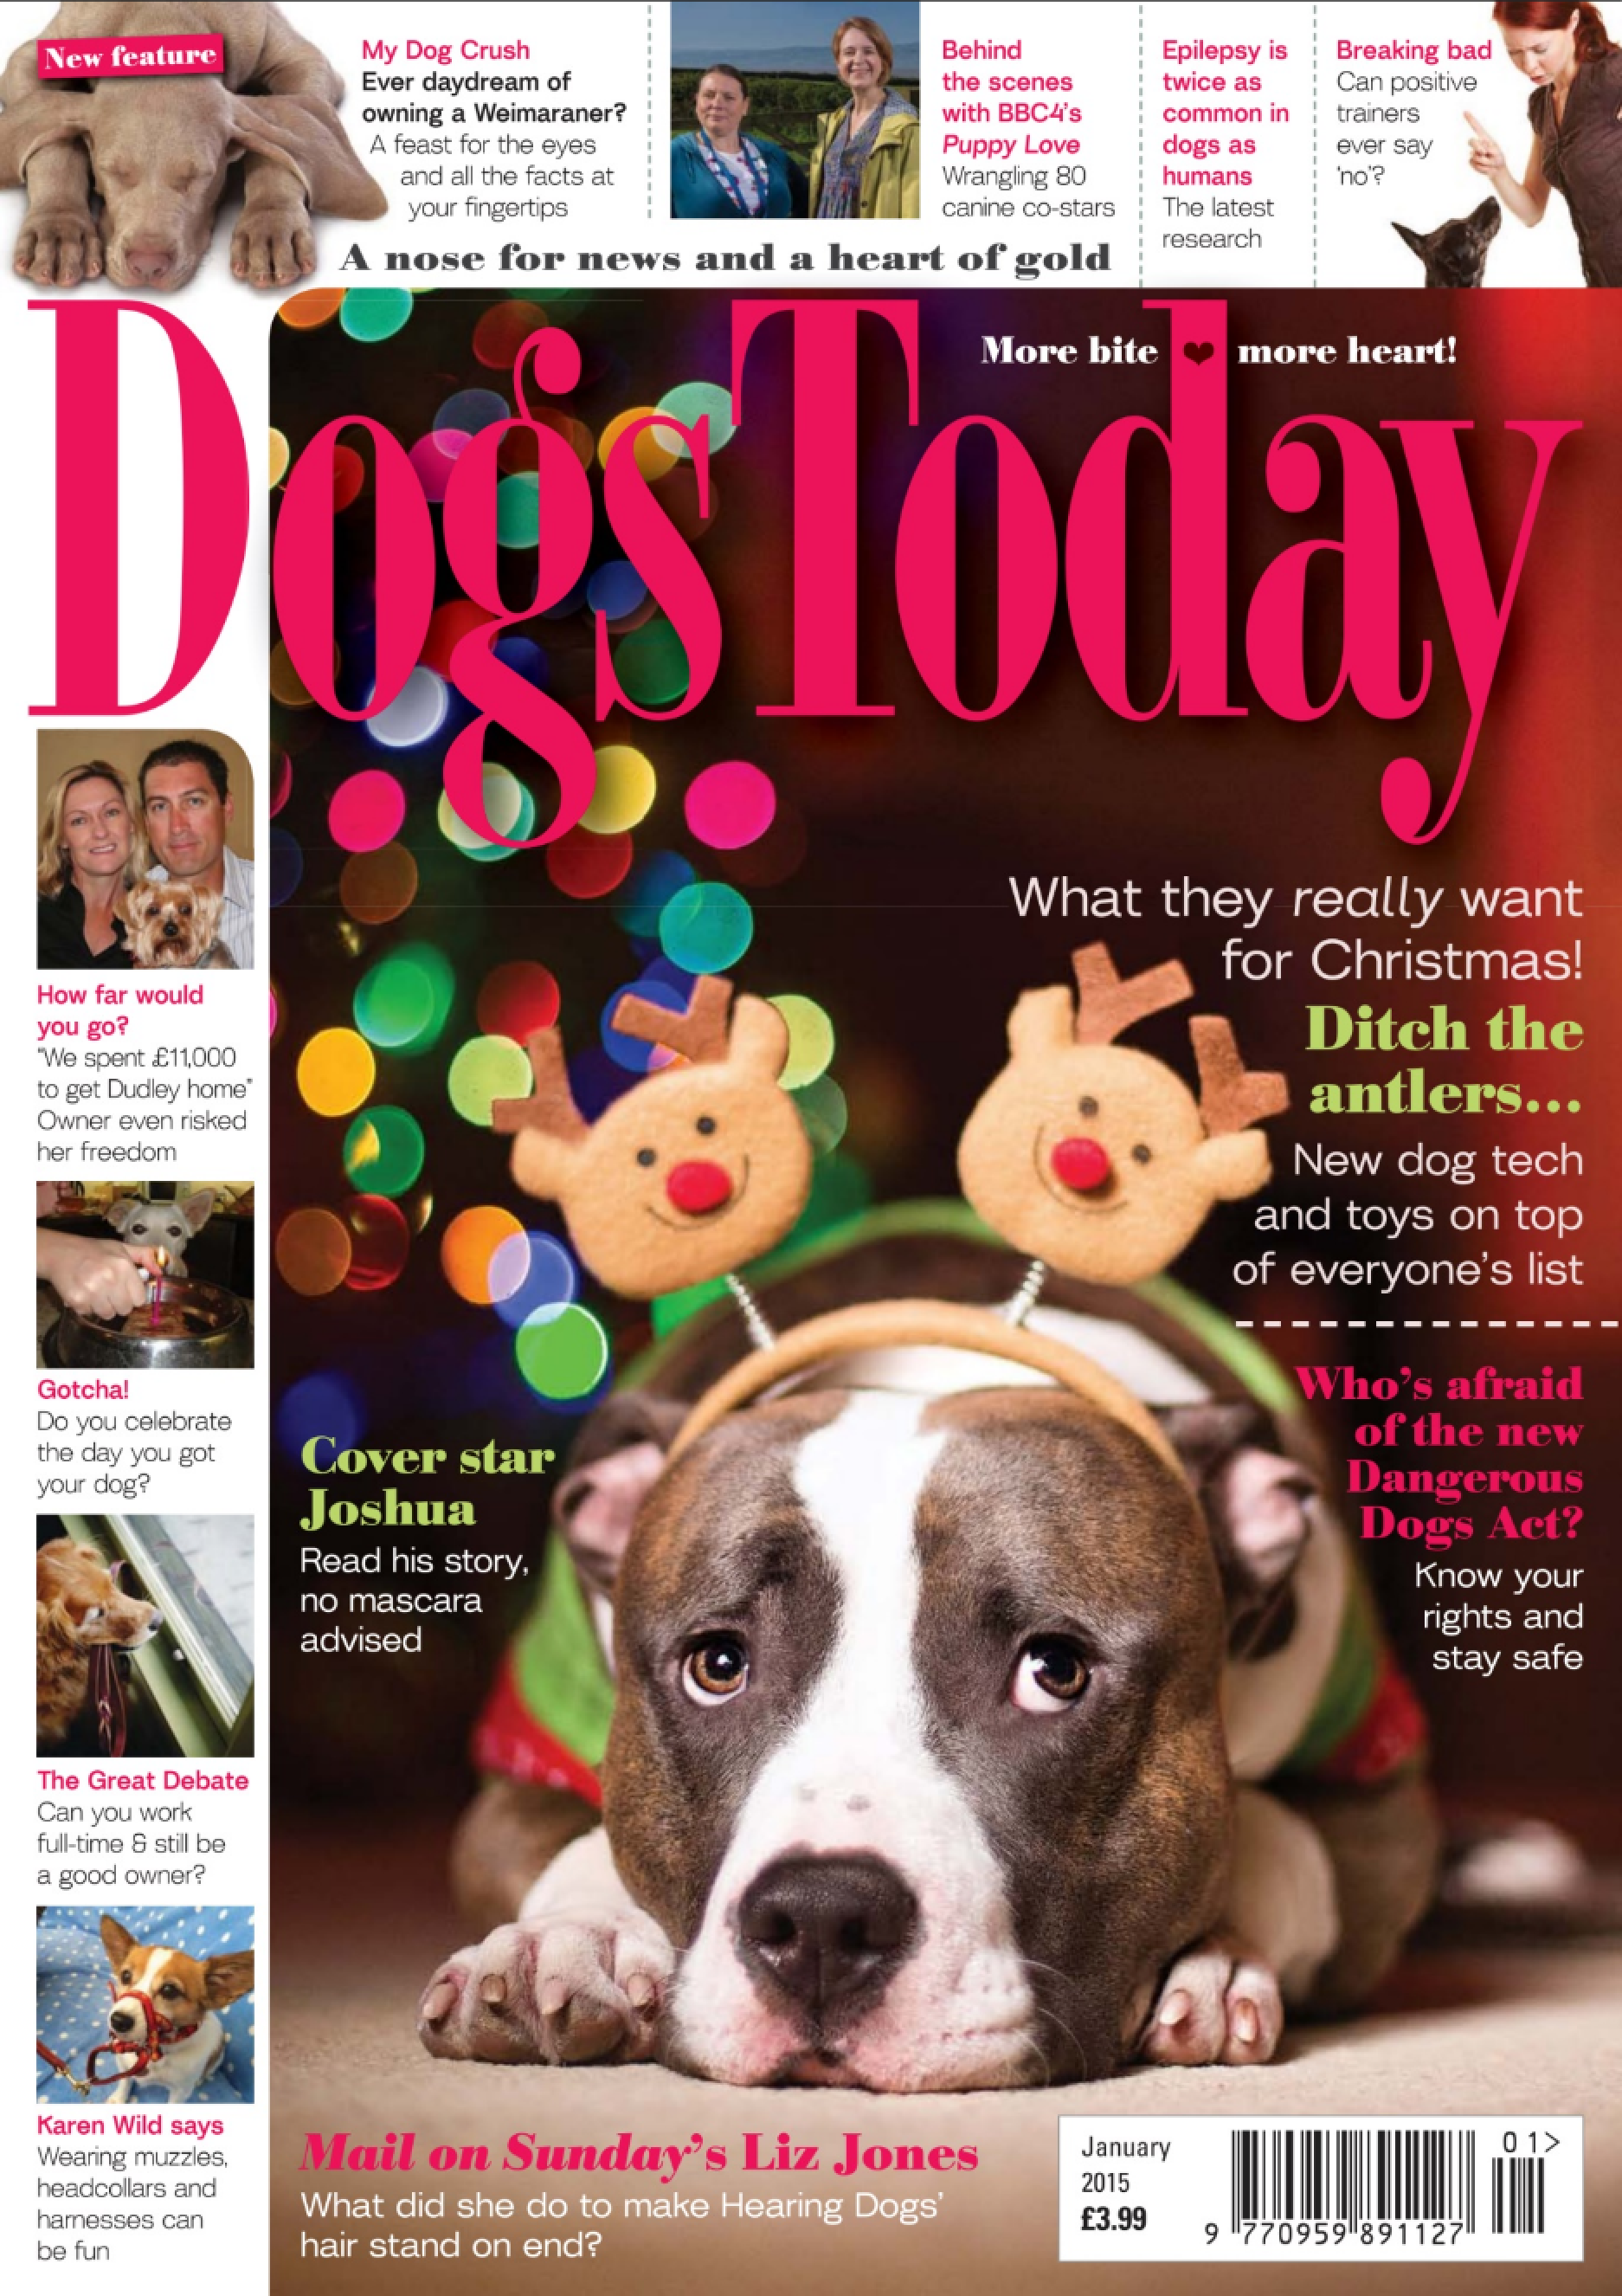 Cover Image - Dogs Today Magazine January 2015